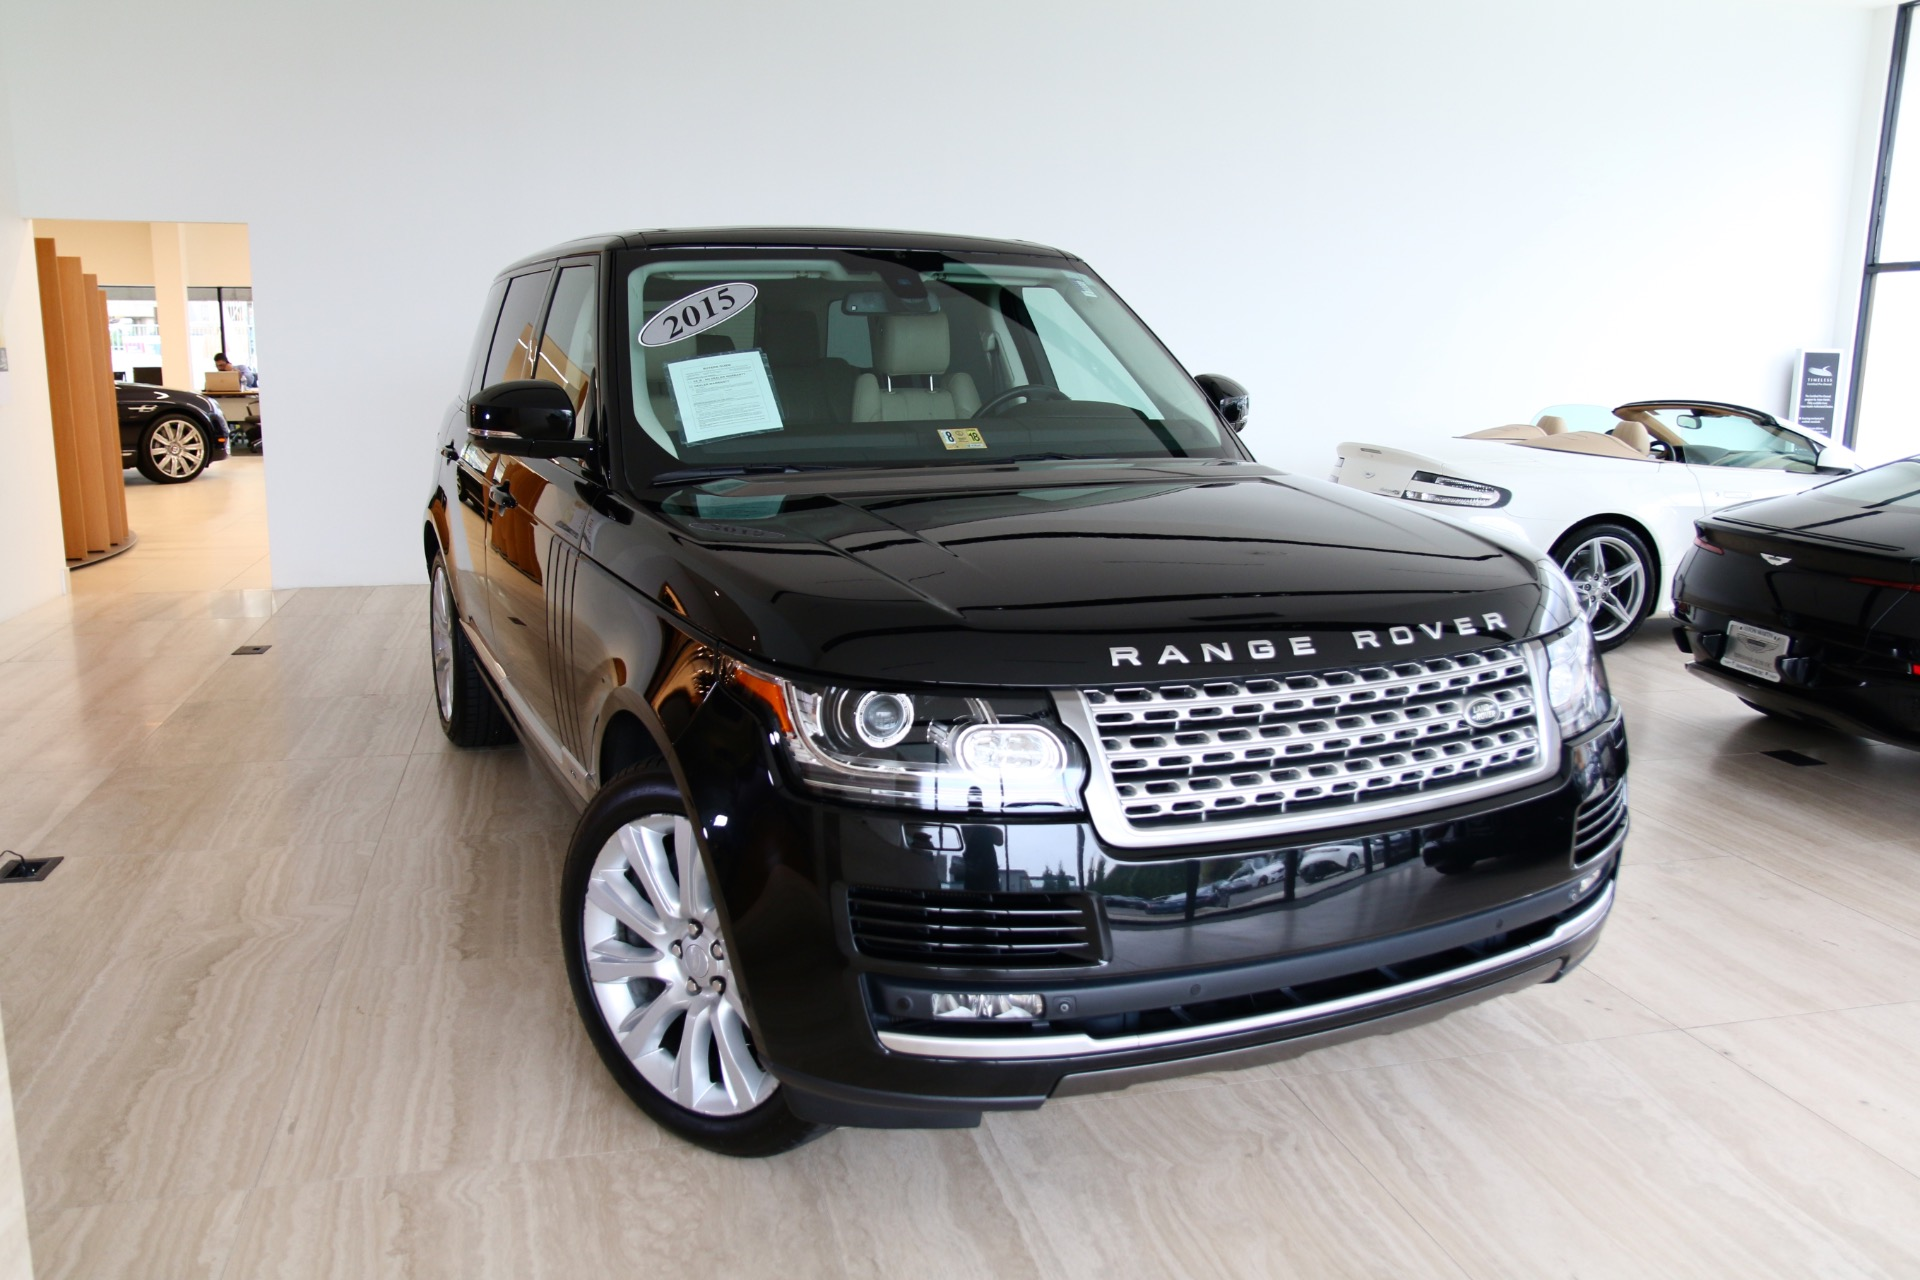 2015 Land Rover Range Rover Supercharged LWB Stock P for